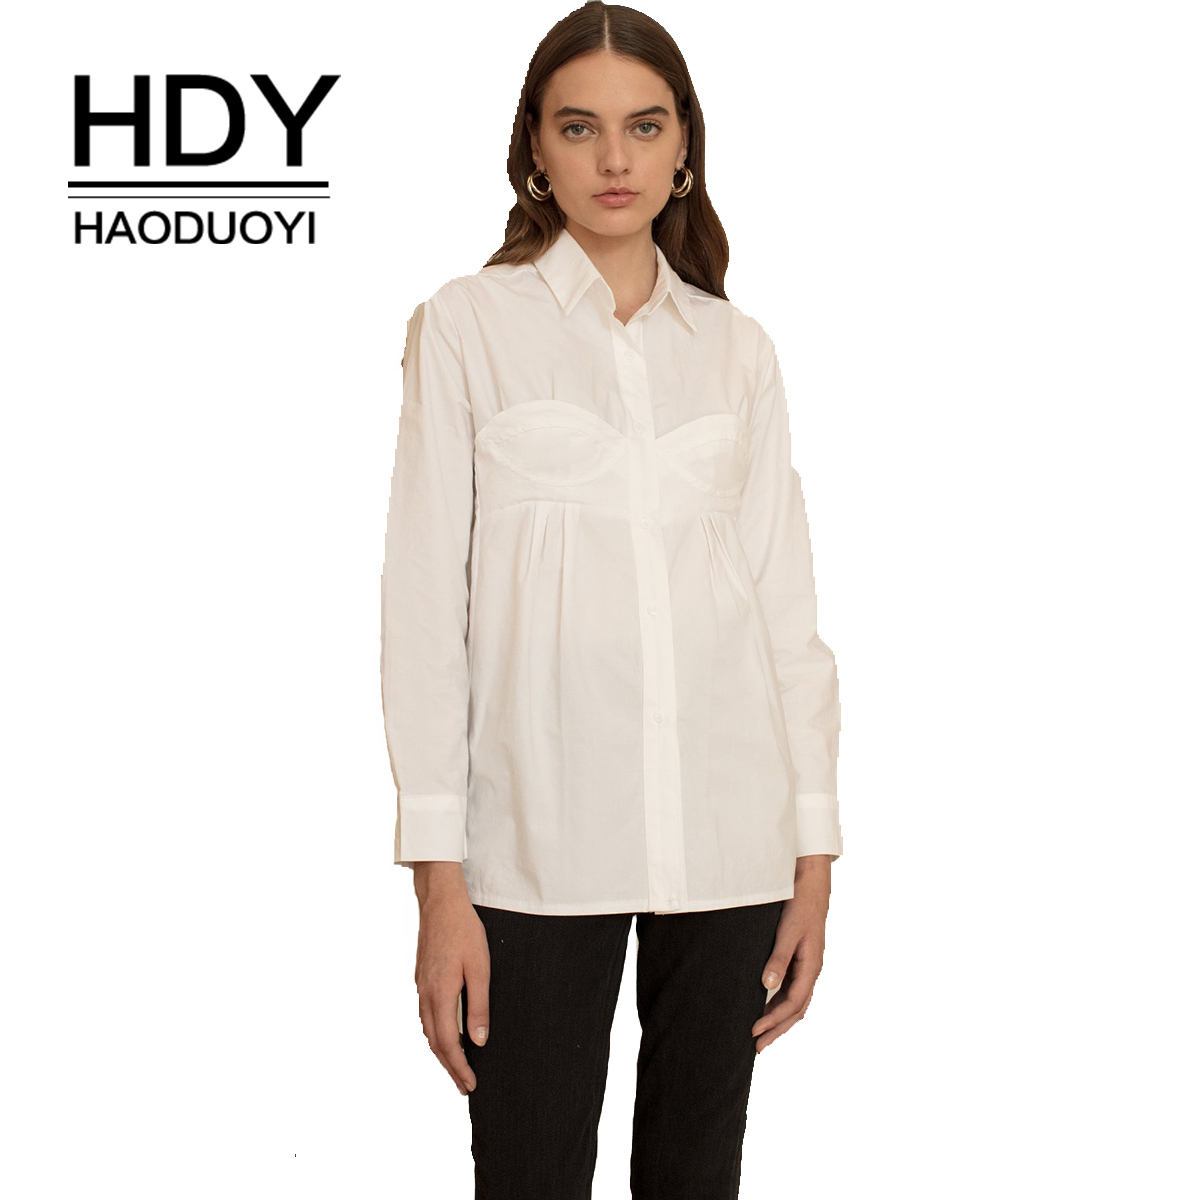 HDY Haoduoyi  Personality Underwear Styling Lapel Pleated Shirt Casual Street Solid Color Top Autumn New Style